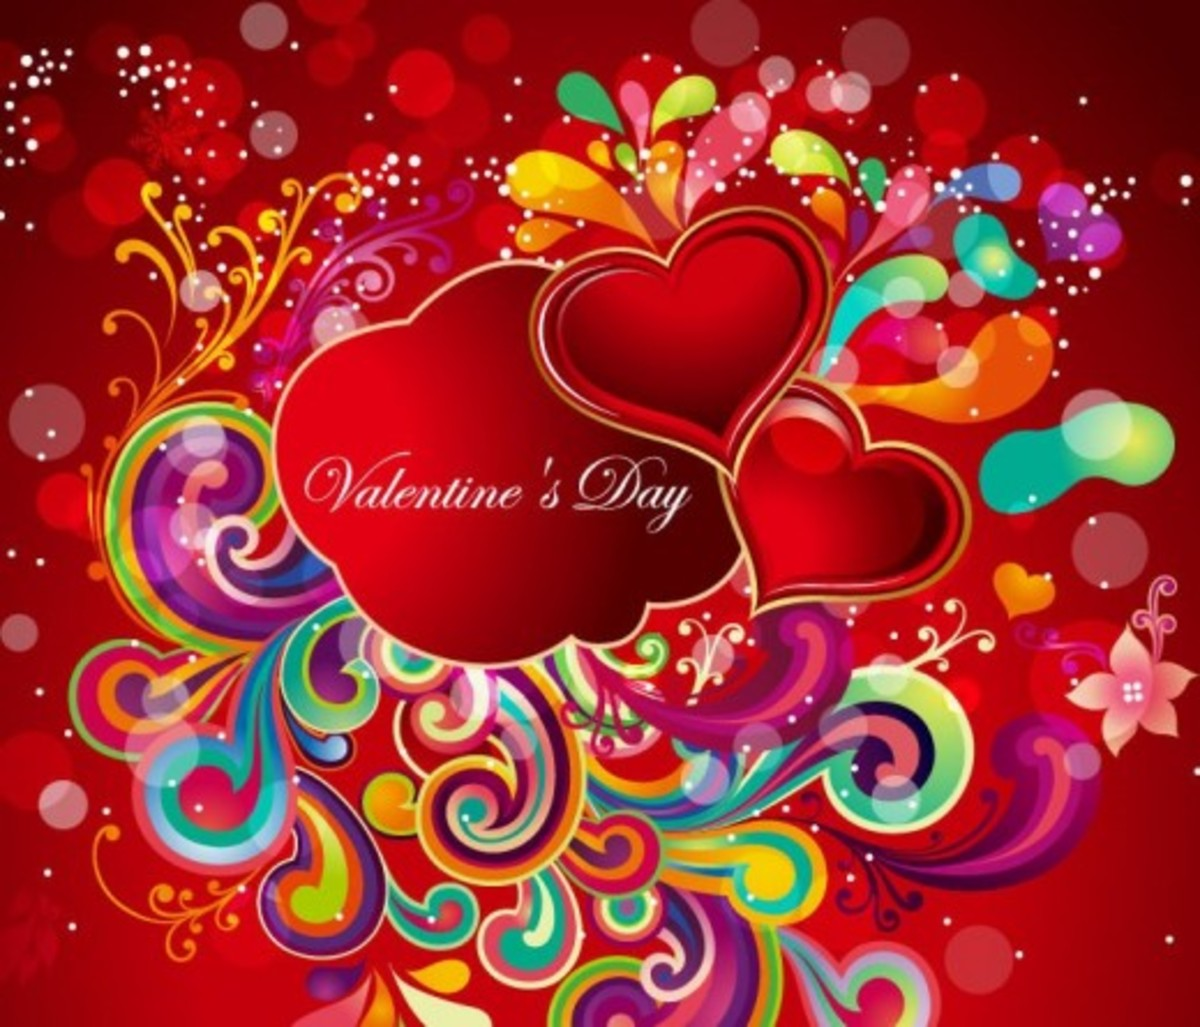 Valentine's Day with Heart Pictures